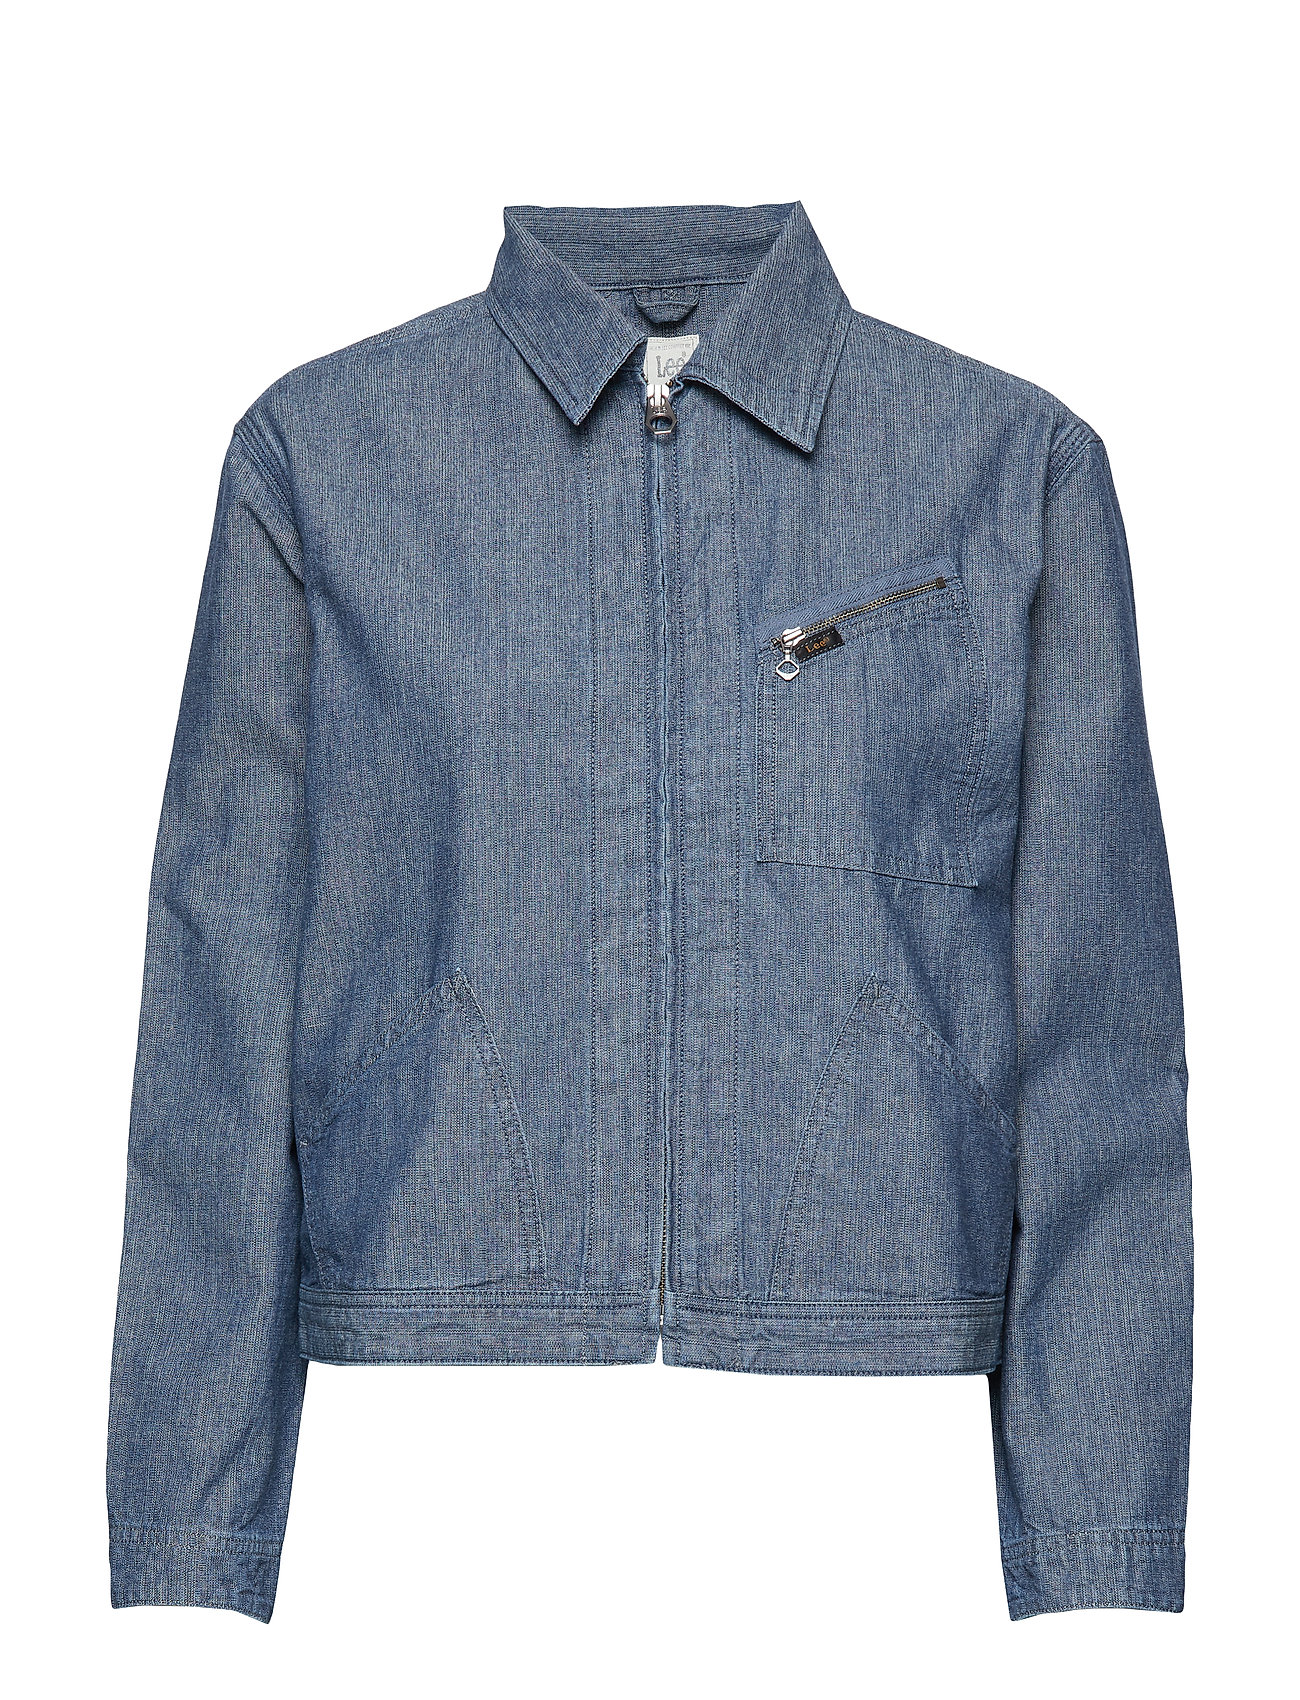 Lee Jeans 191 J JACKET - CHAMBRAY